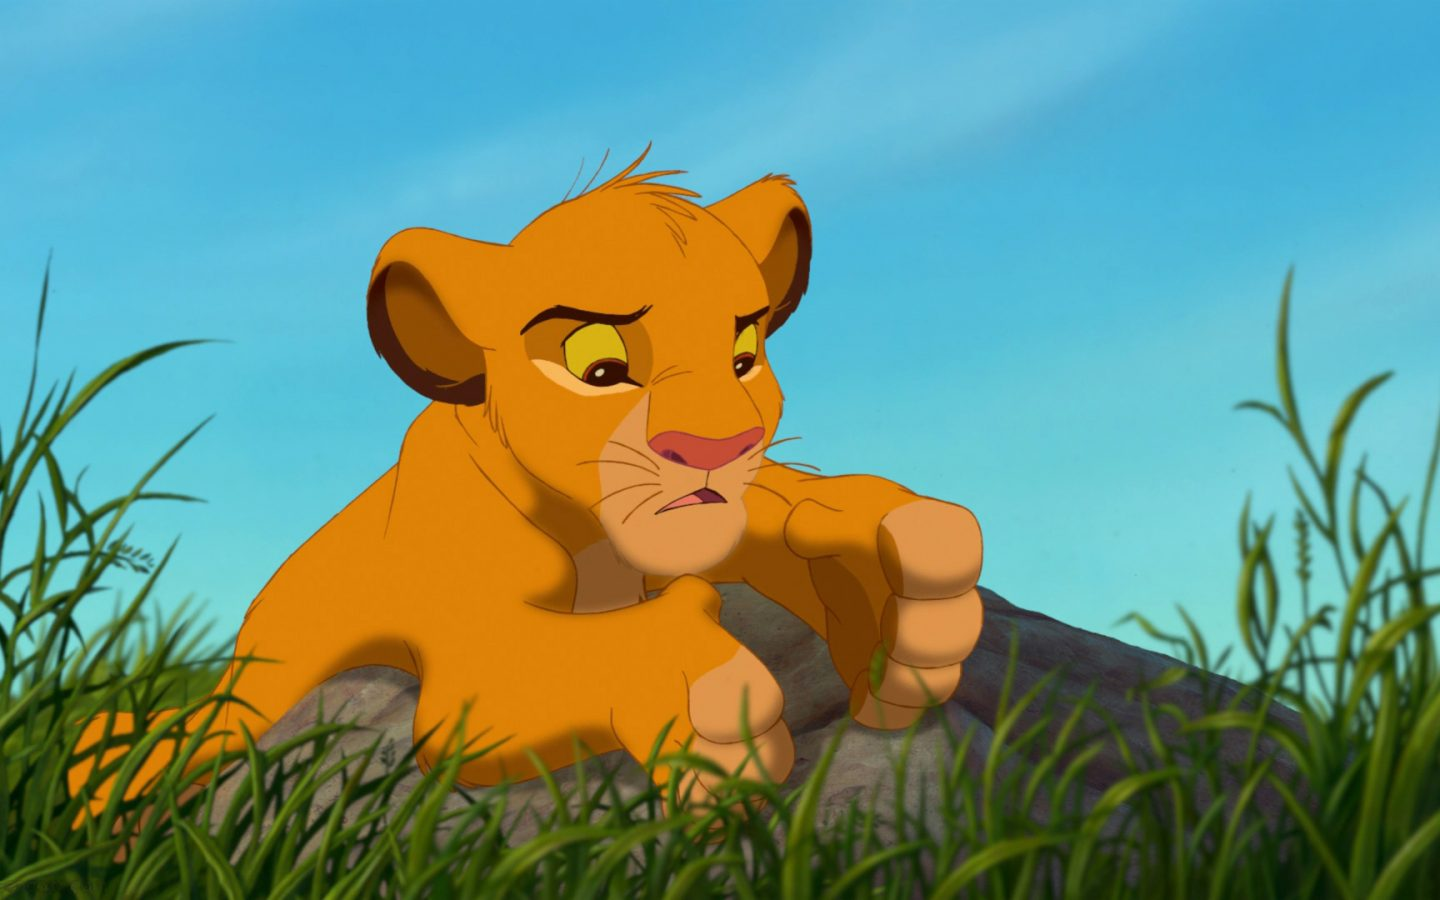 Cartoon Simba The Lion King , HD Wallpaper & Backgrounds